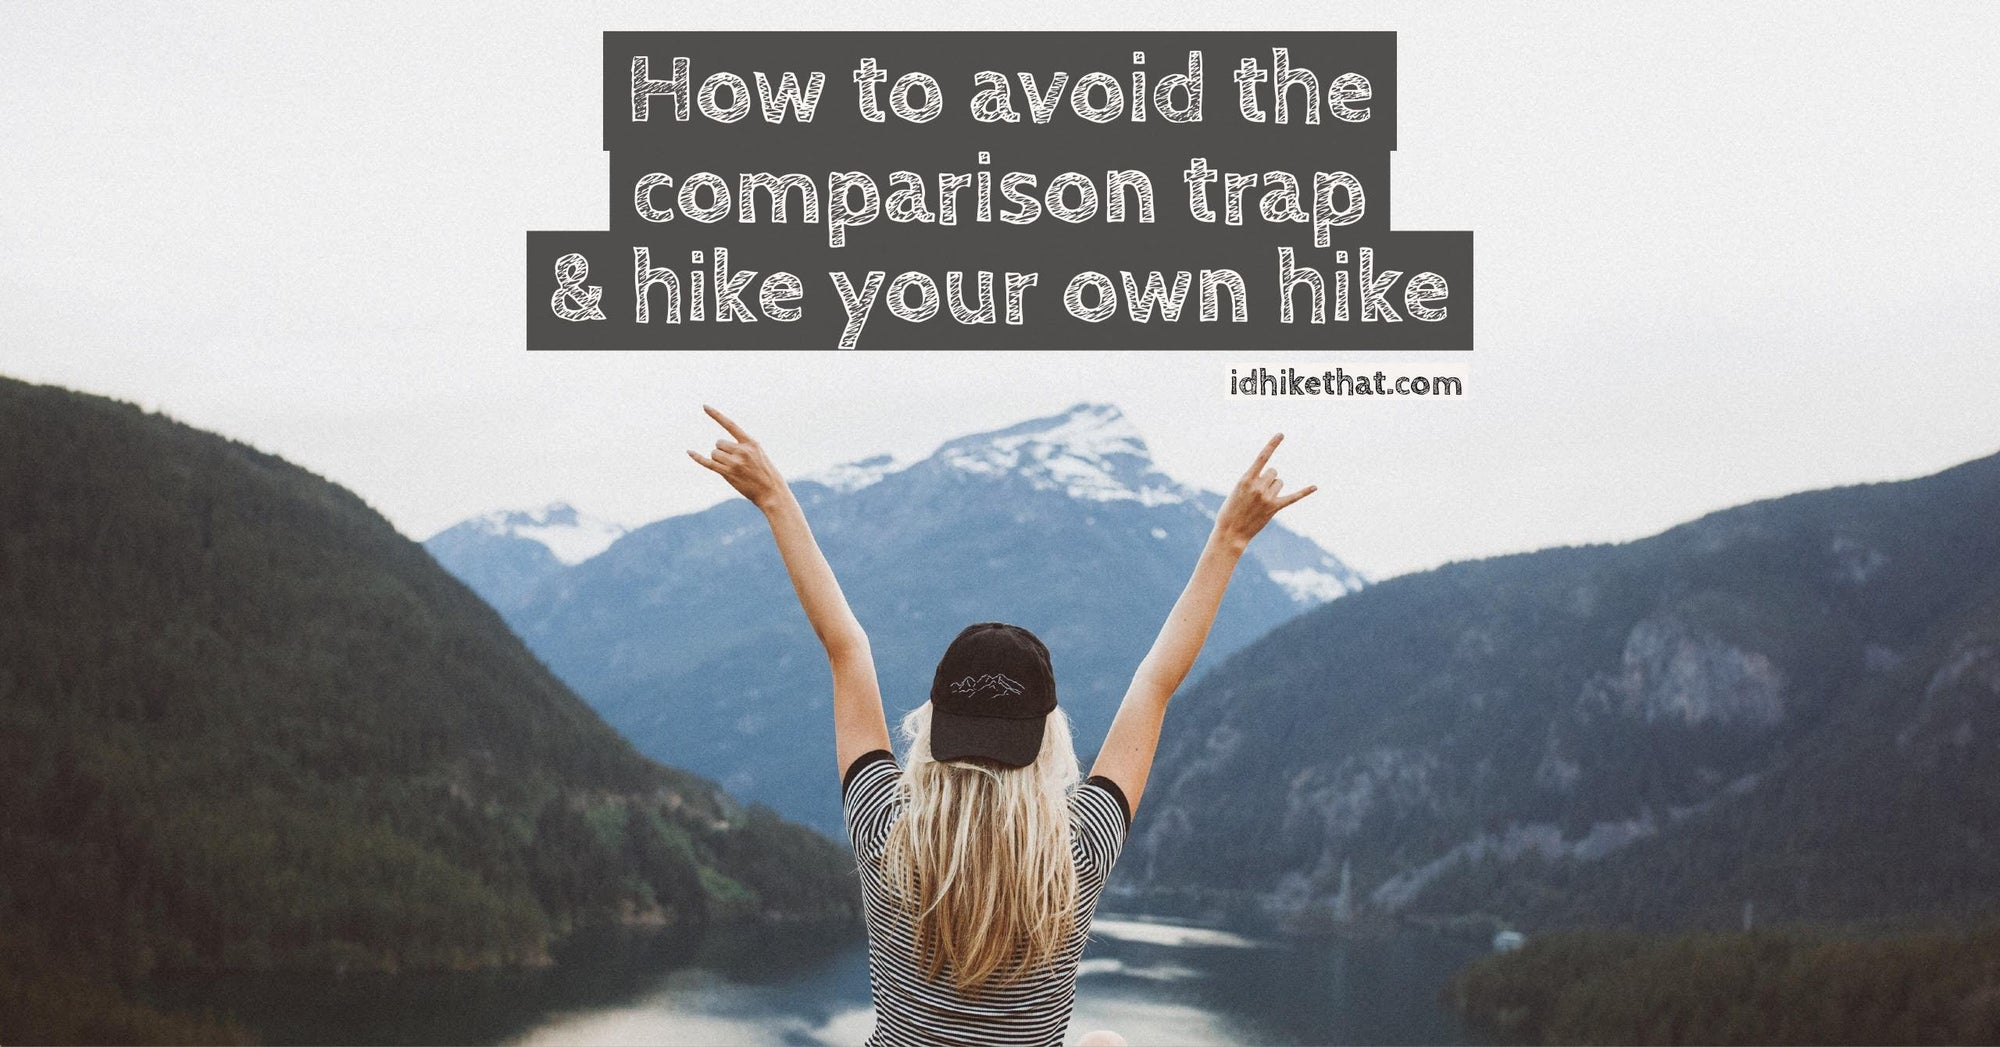 Don't let comparison rob you of your hiking achievements. Visit idhikethat.com and find out how to hike your own hike.